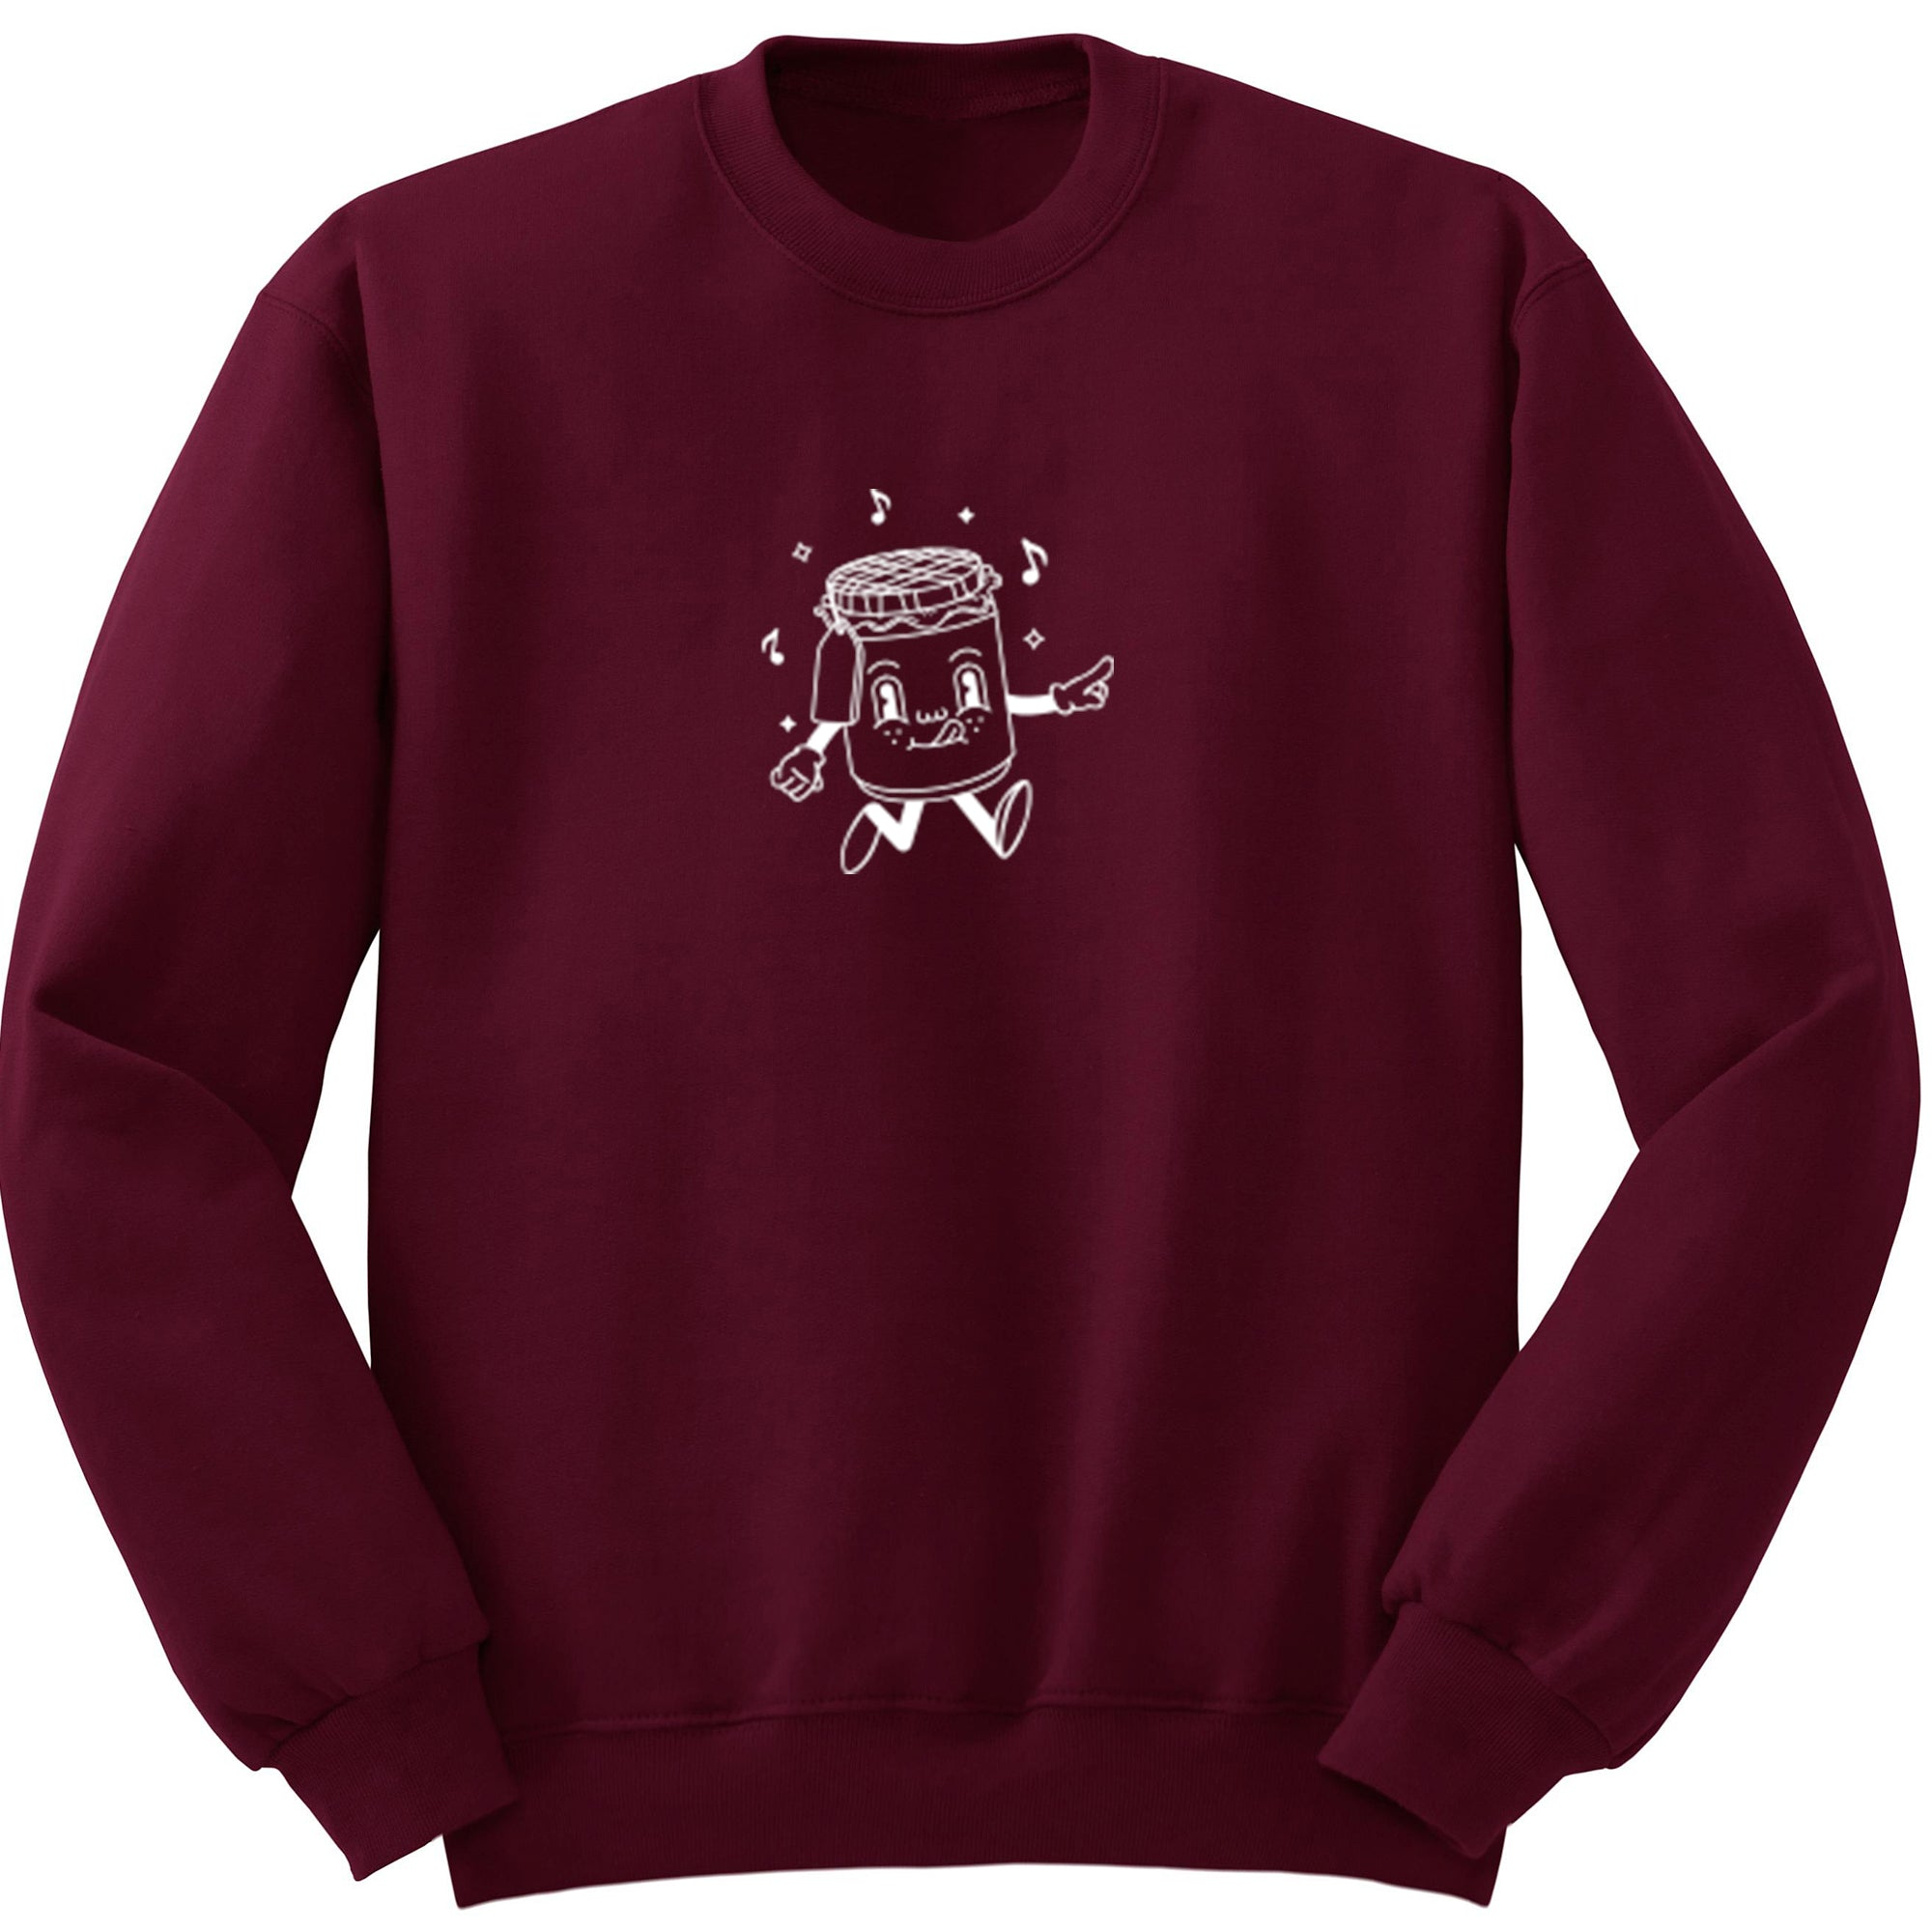 Jam Illustration Unisex Jumper S1151 - Illustrated Identity Ltd.